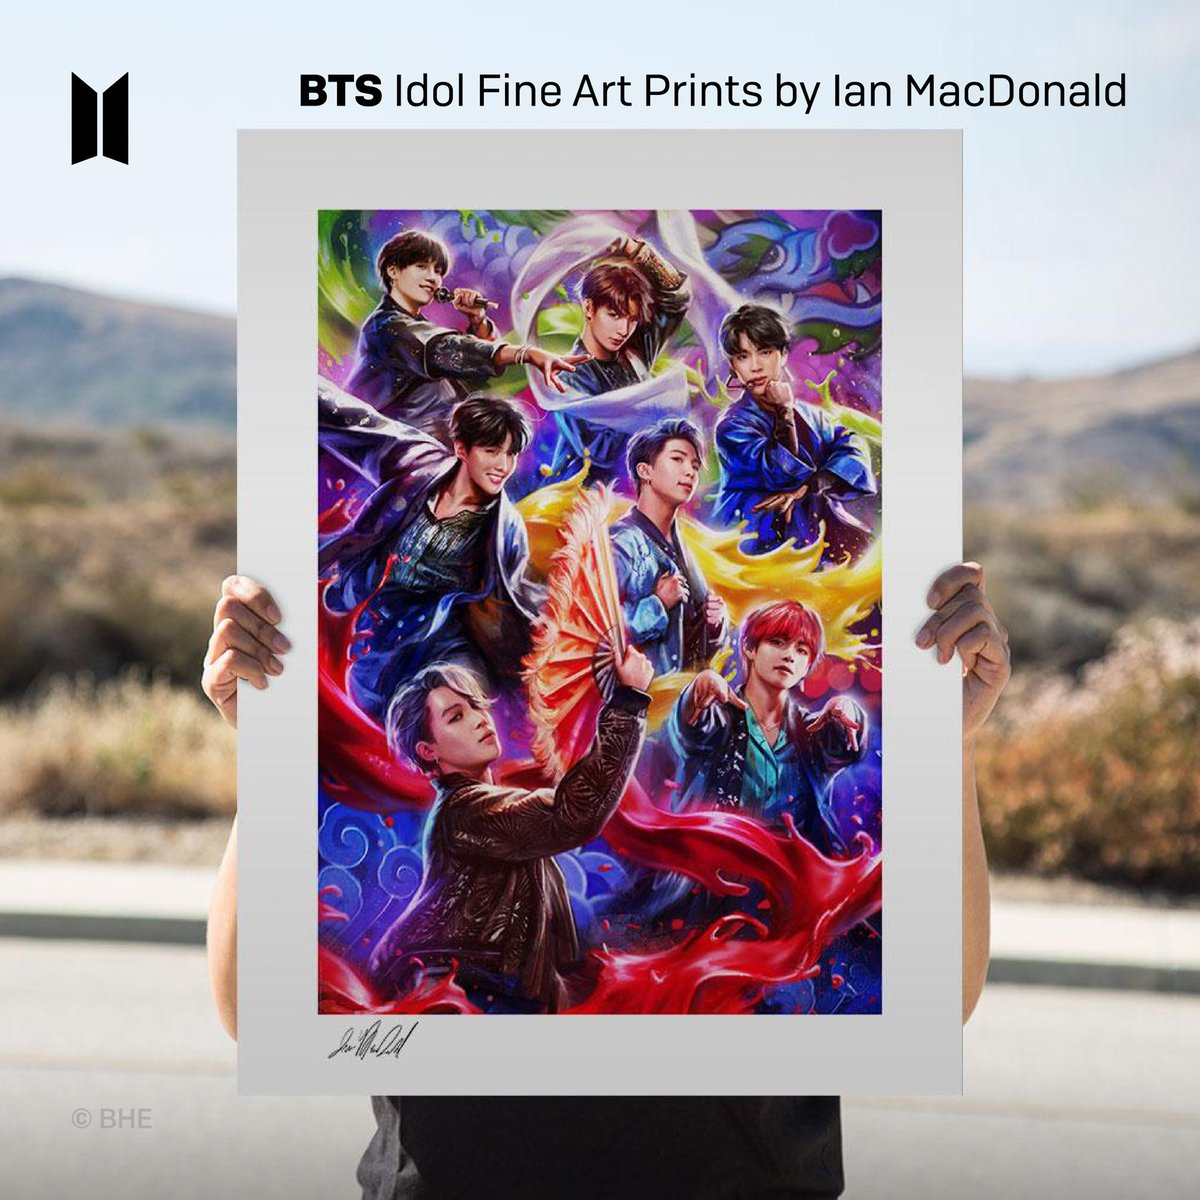 [February 2021] Newly Launched Licensed Products! BTS @collectsideshow Art Prints available worldwide